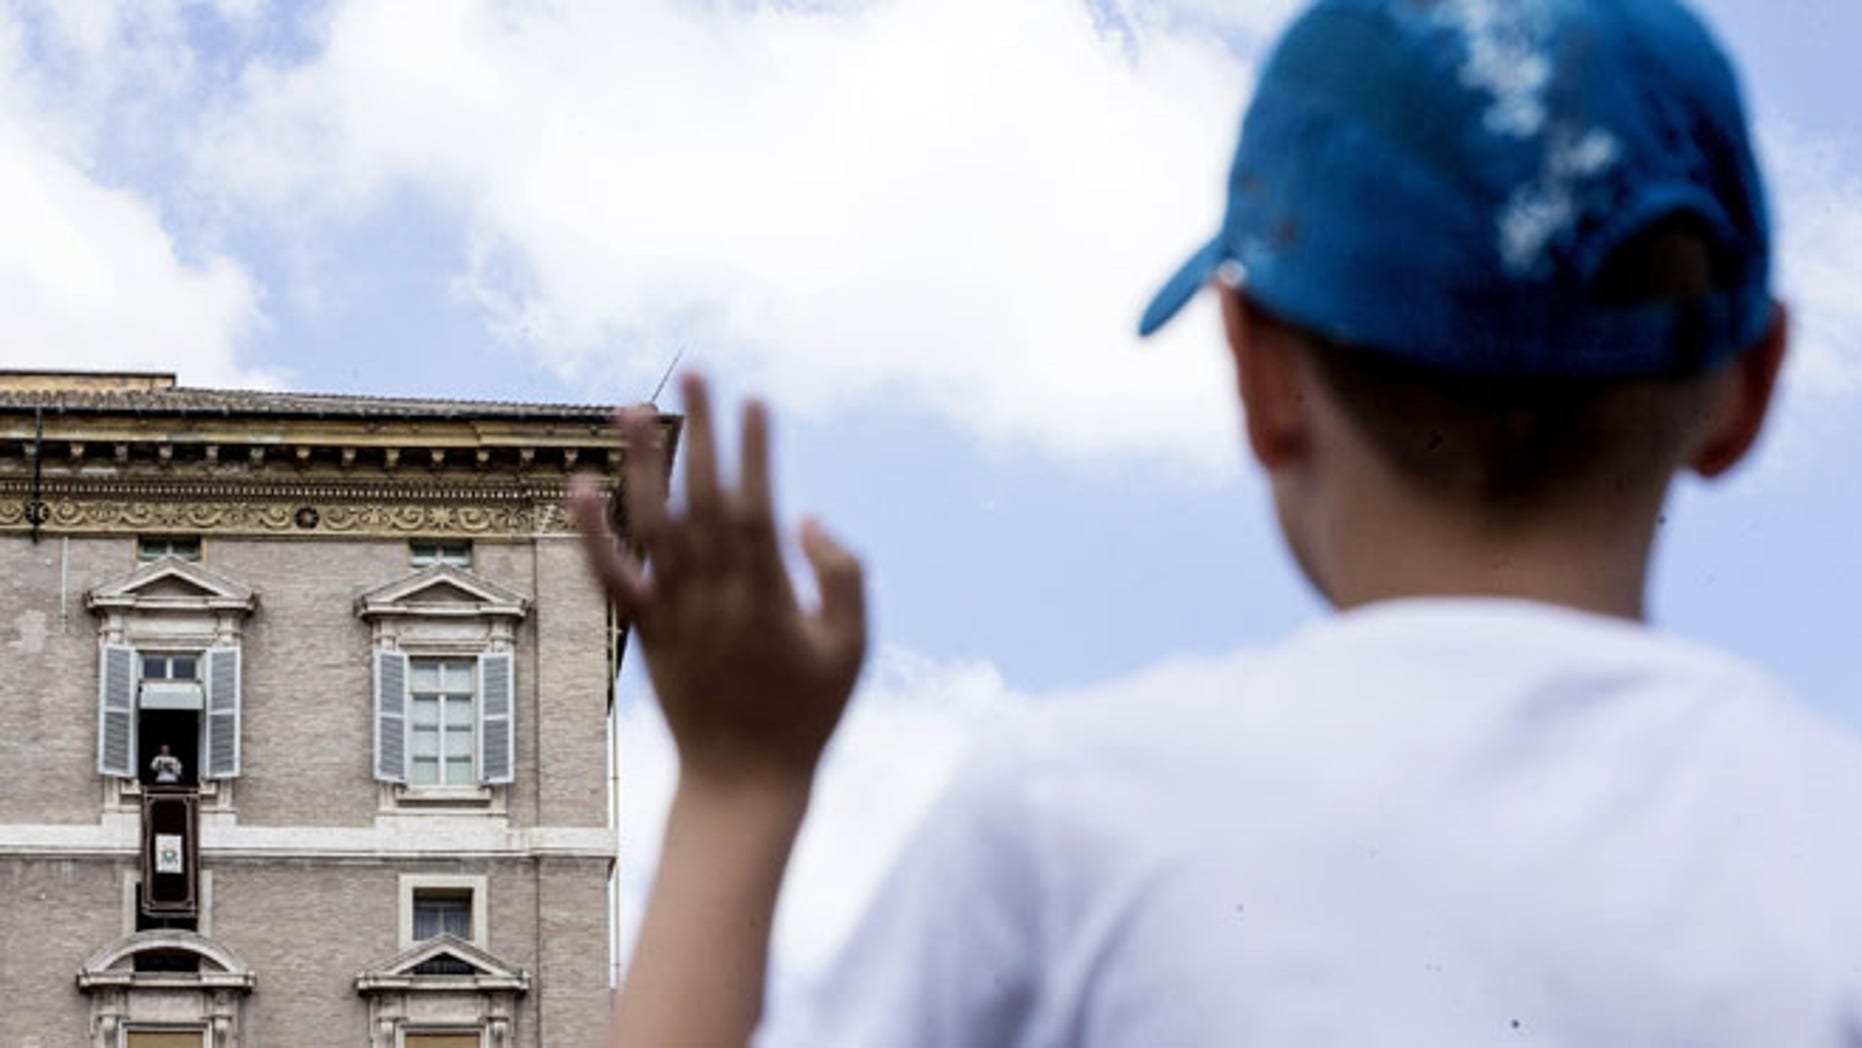 A young boy waves as Pope Francis delivers his message from his studio window overlooking St. Peter's Square during the Sunday Angelus prayer, at the Vatican, Sunday, Aug. 14, 2016. (Angelo Carconi/ANSA via AP)